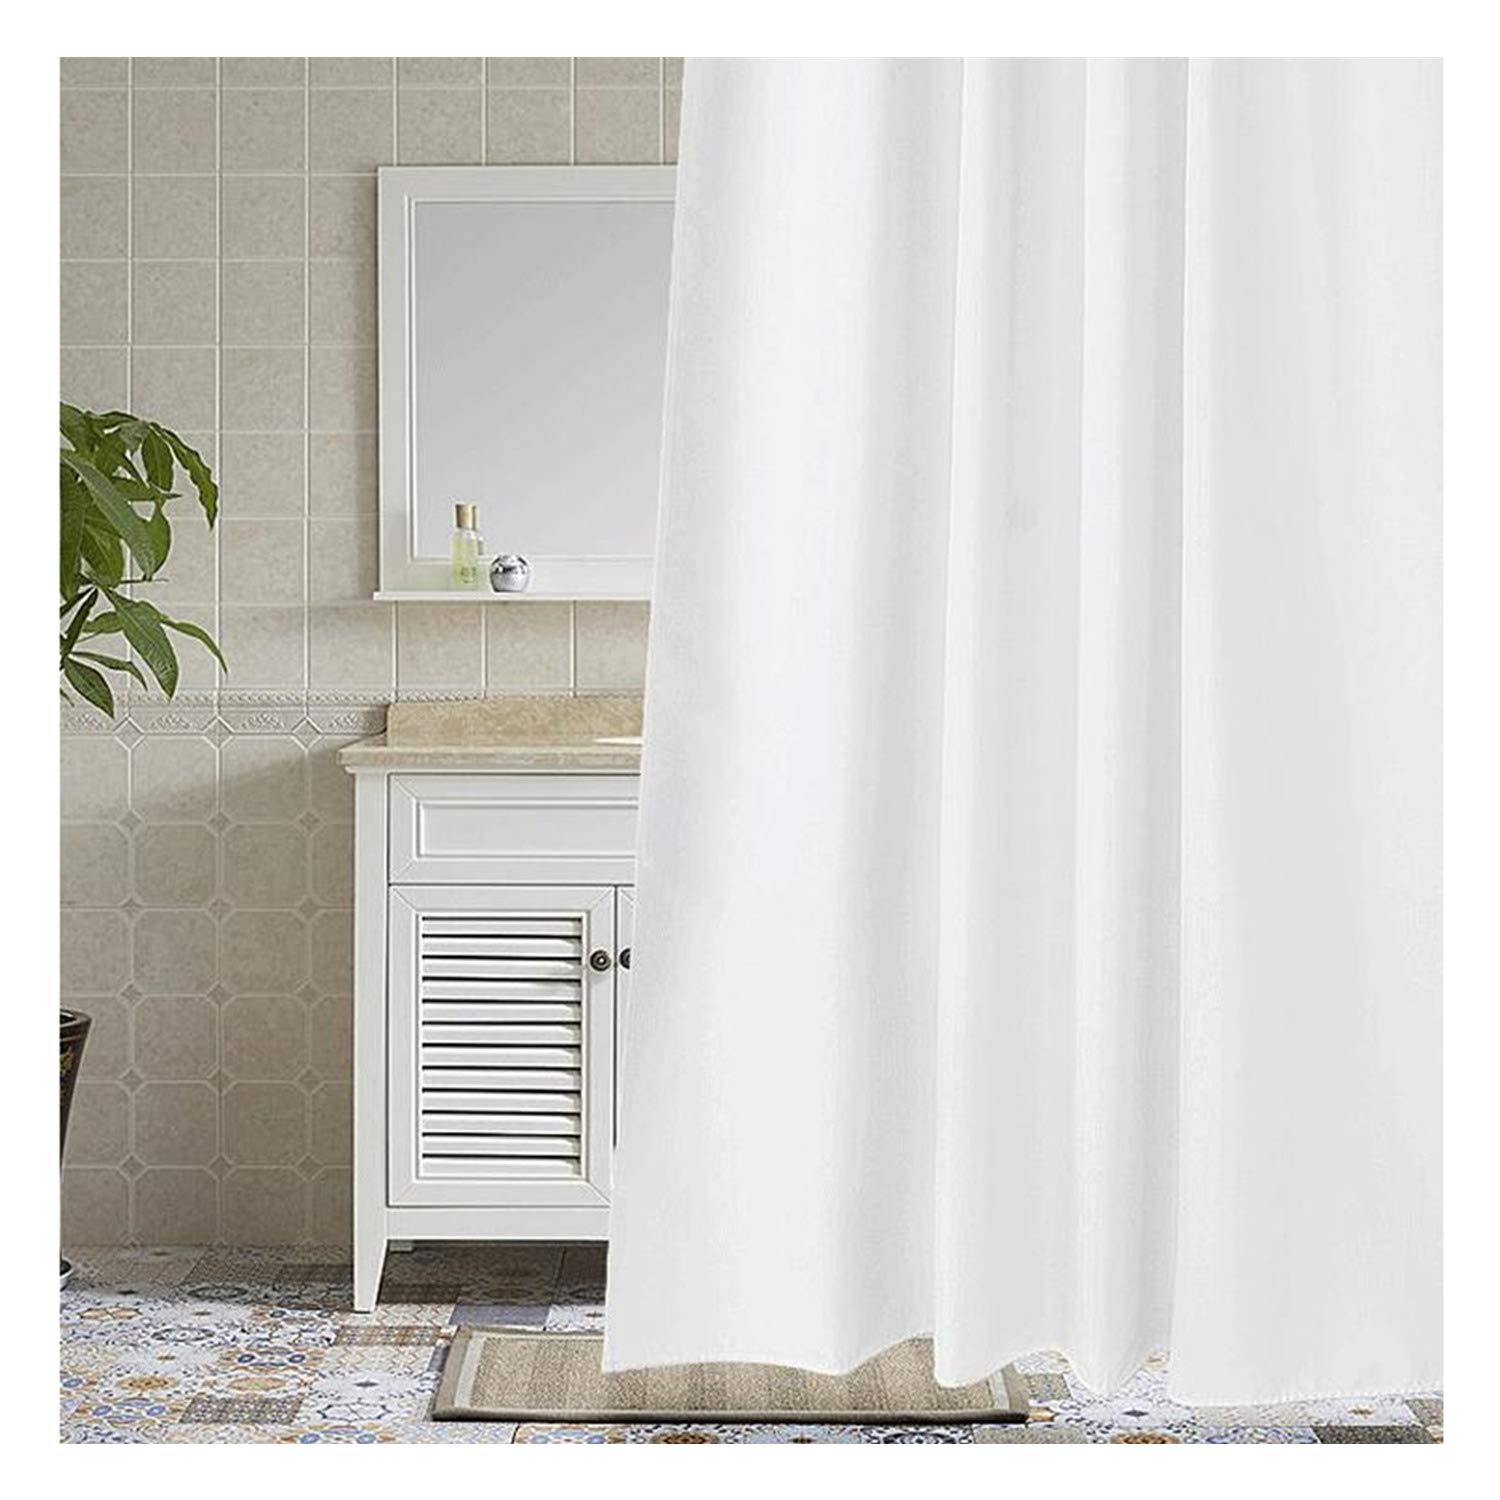 Cryseam 72x 72 Inch Hotel Fabric Shower Curtain Waterproof and Mildew Free Bath Curtains Heavy Weight